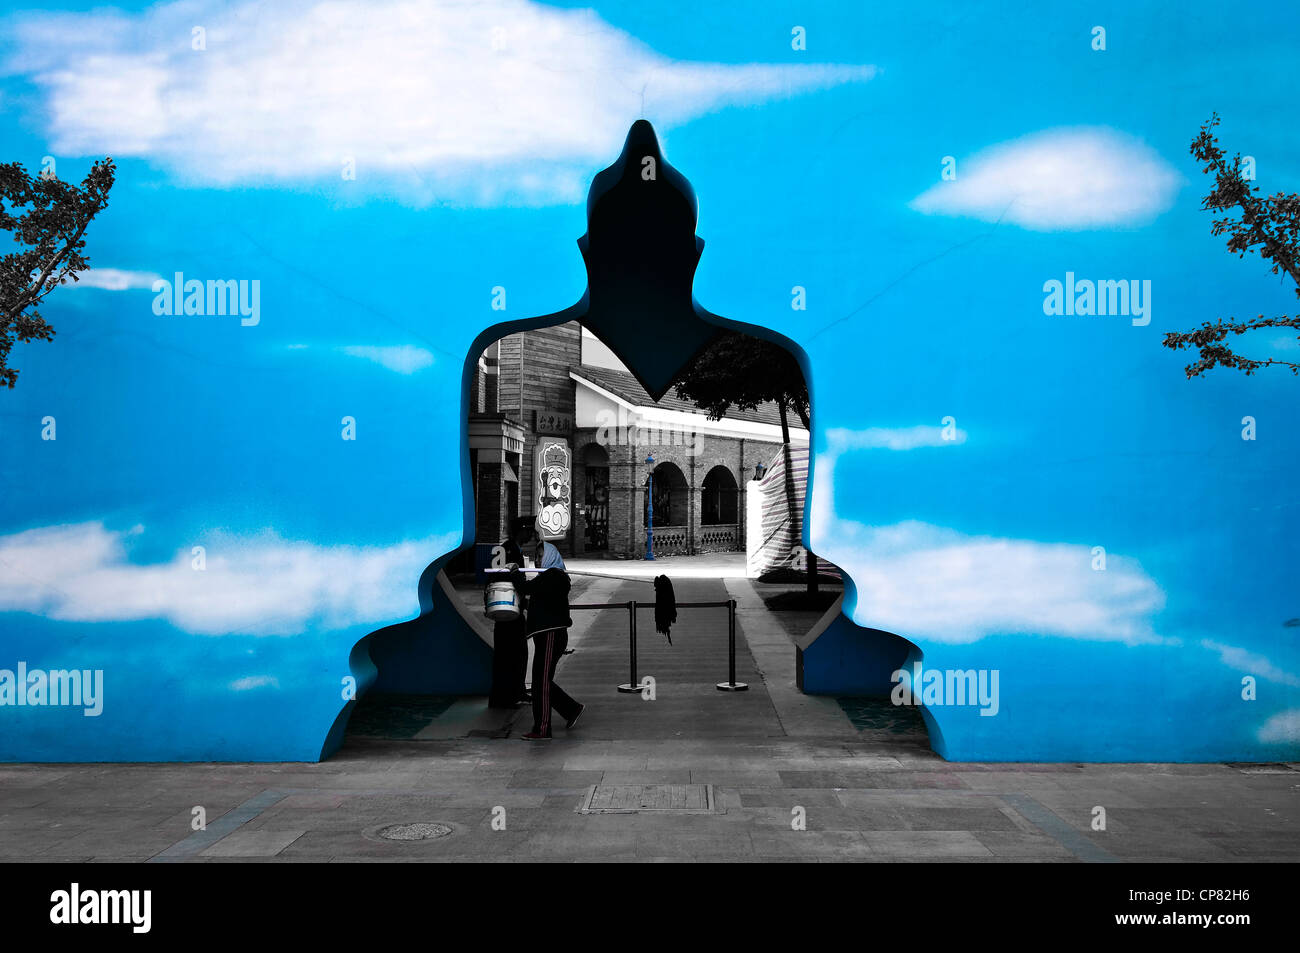 Buddha shaped surrealist door in a blue wall - Zhouzhuang near Shanghai, China - Stock Image